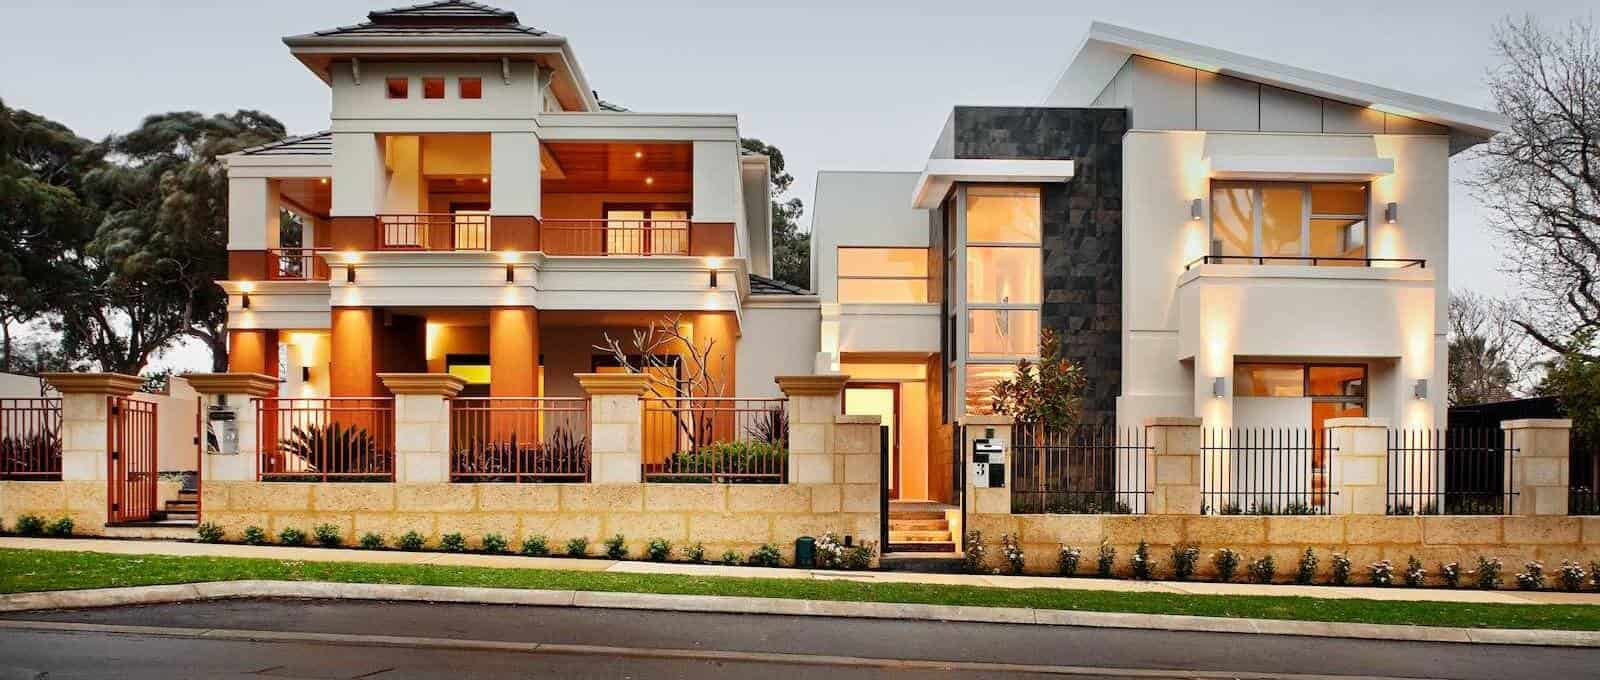 best home designers Perth